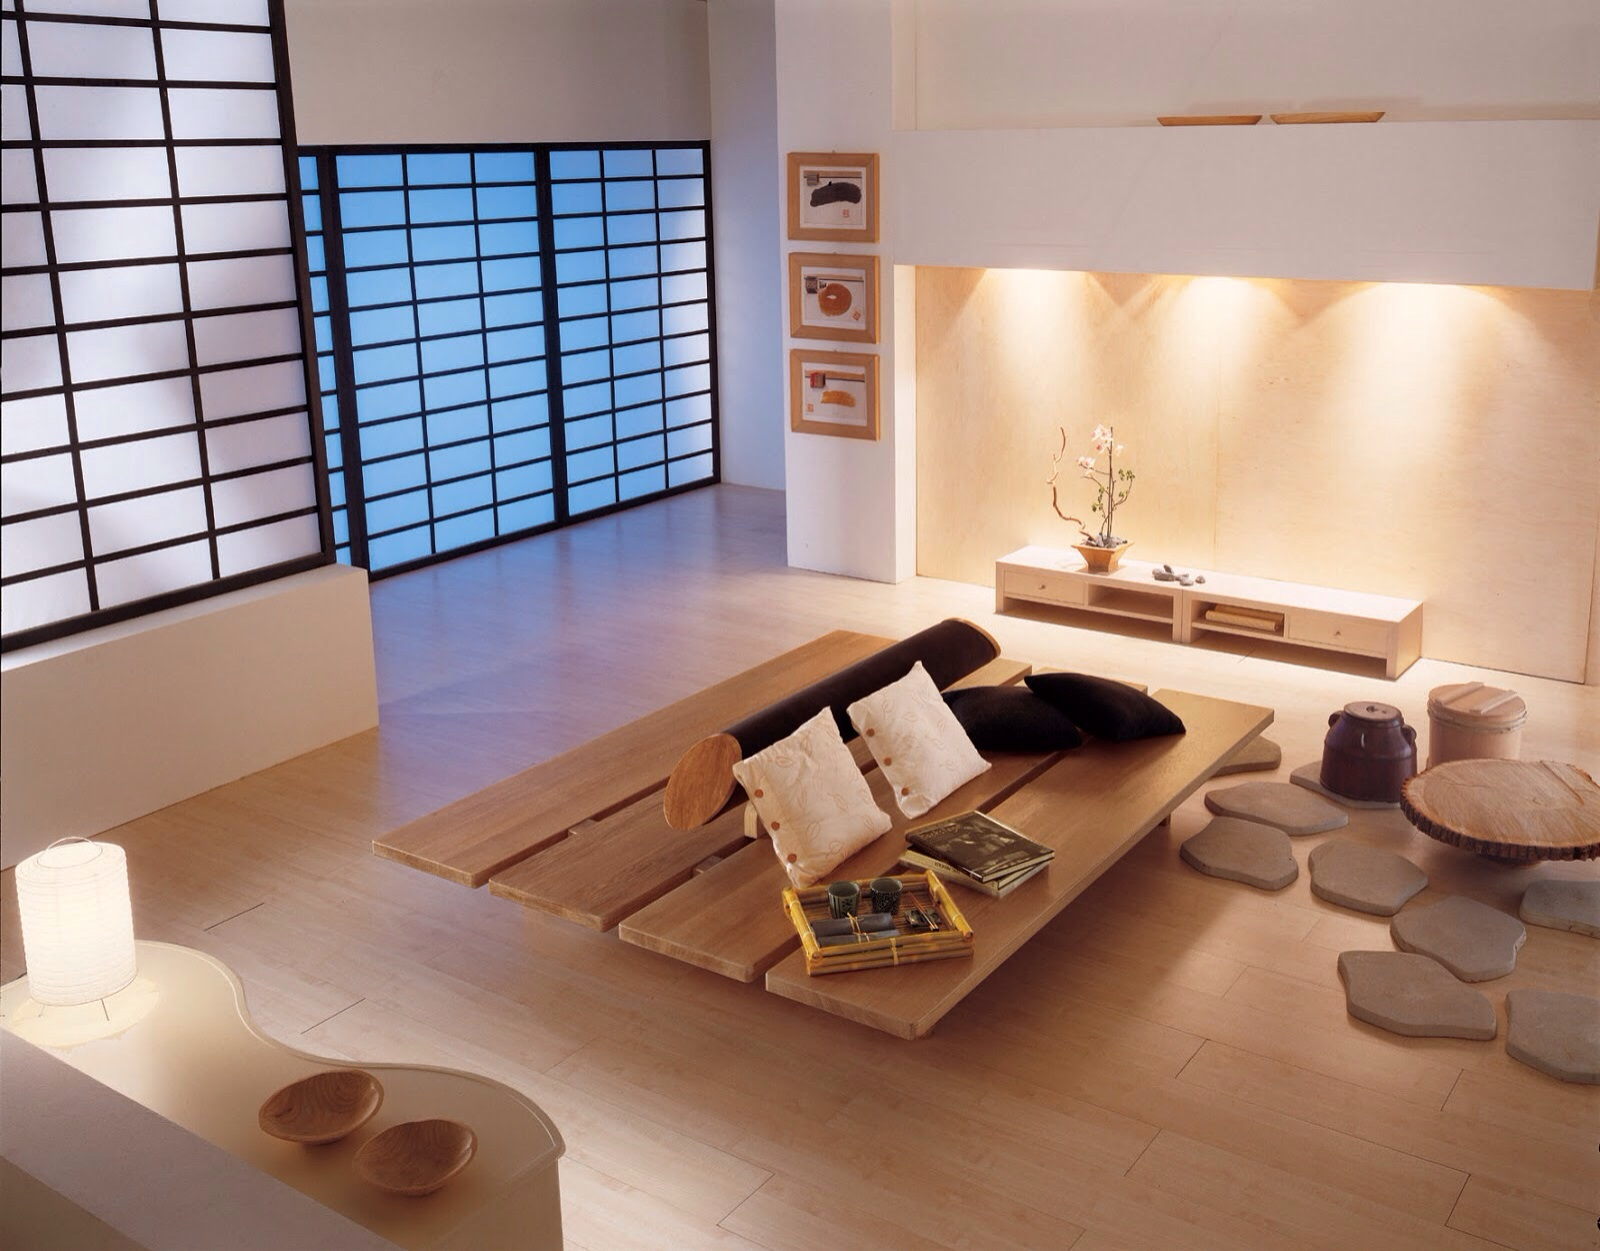 Japanese decor living room - Japanese Decor Living Room 25